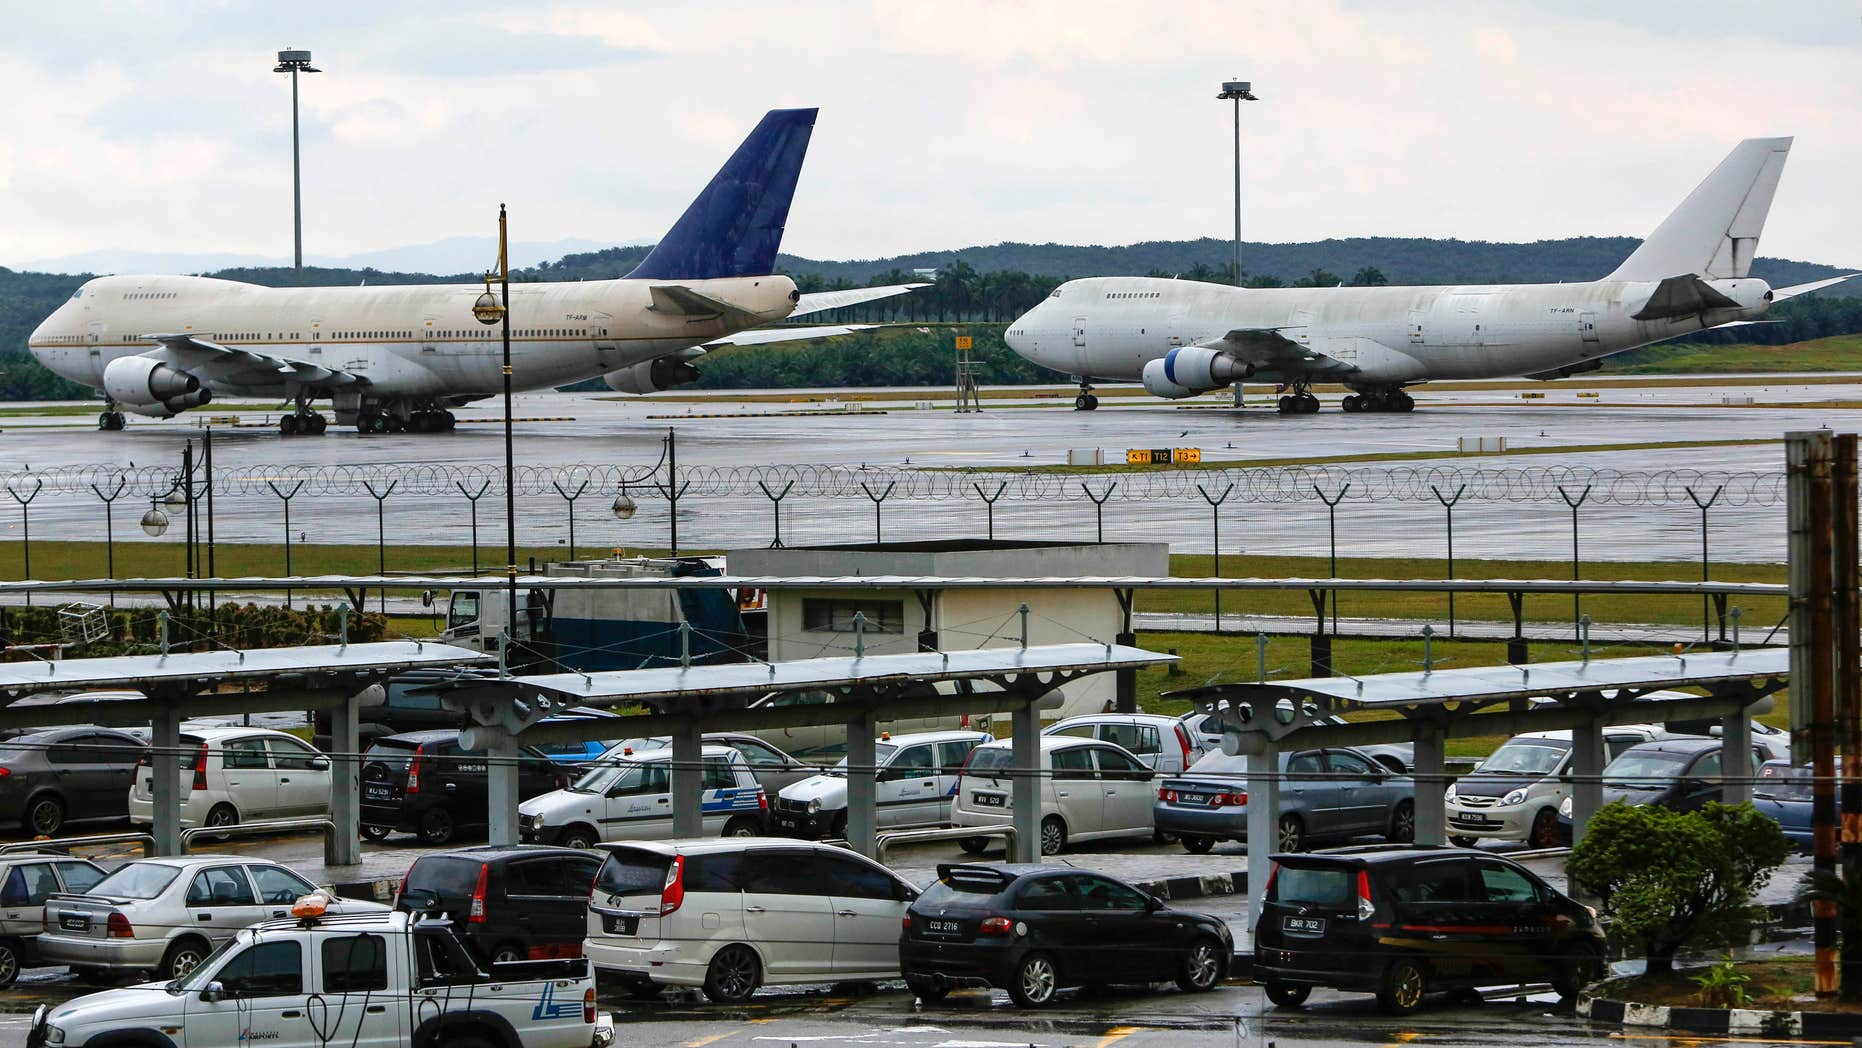 Dec. 9, 2015: Left to right, two of the three abandoned planes with tail numbers, TF-ARM and TF-ARN are seen taxied on the tarmac of Kuala Lumpur International Airport in Sepang, Malaysia.